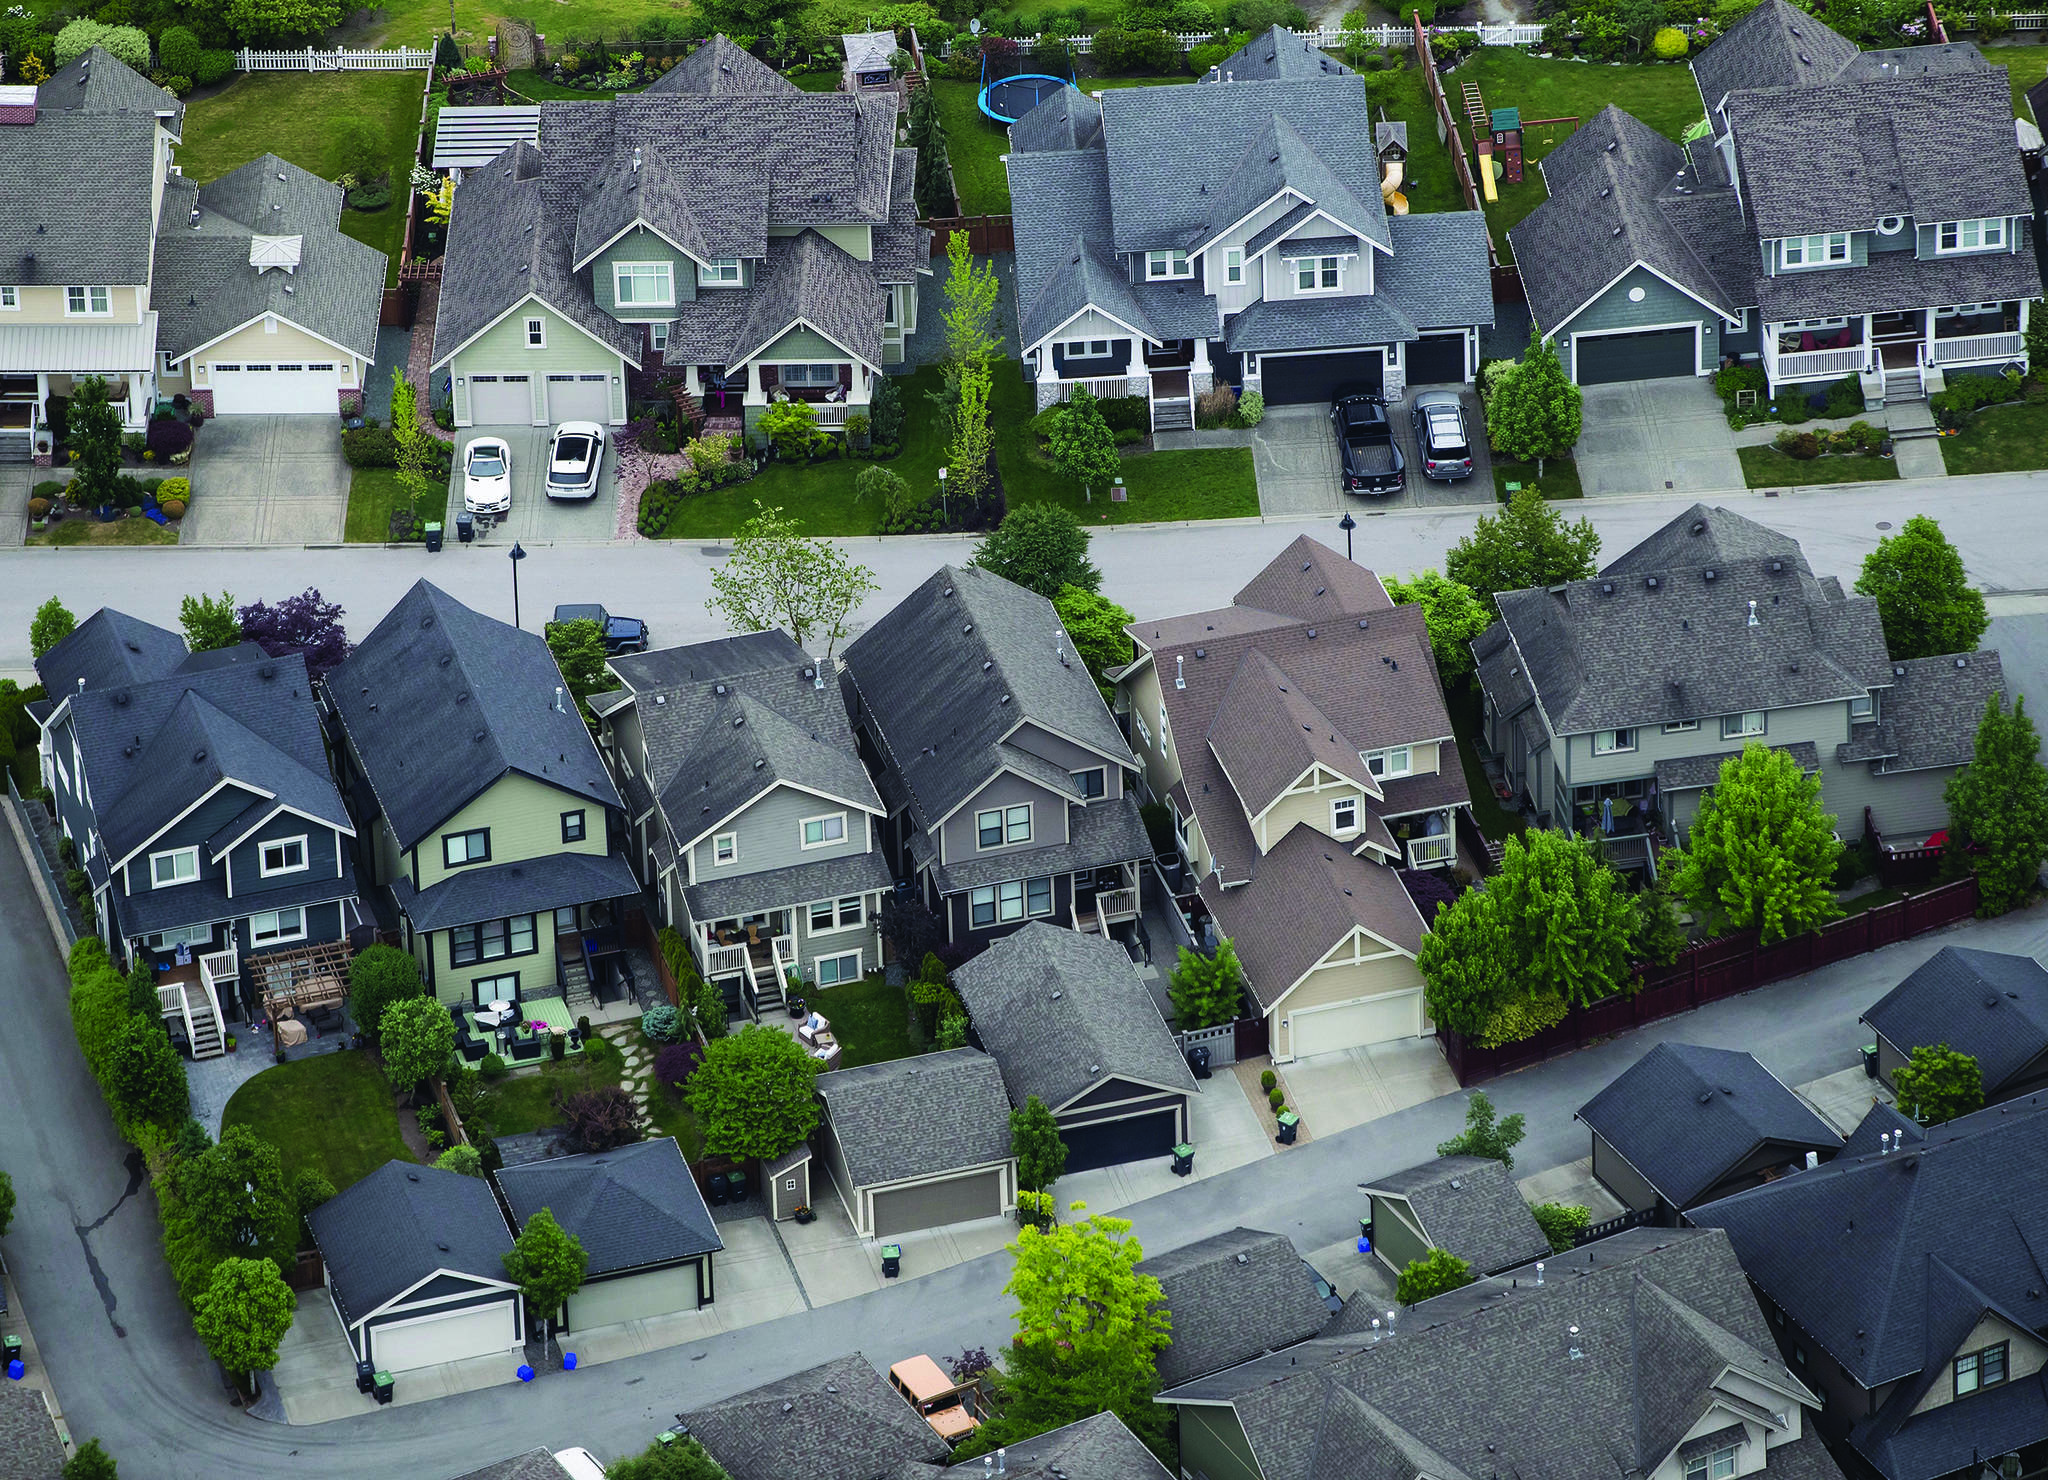 WEB POLL: Can you pay your property taxes on time?